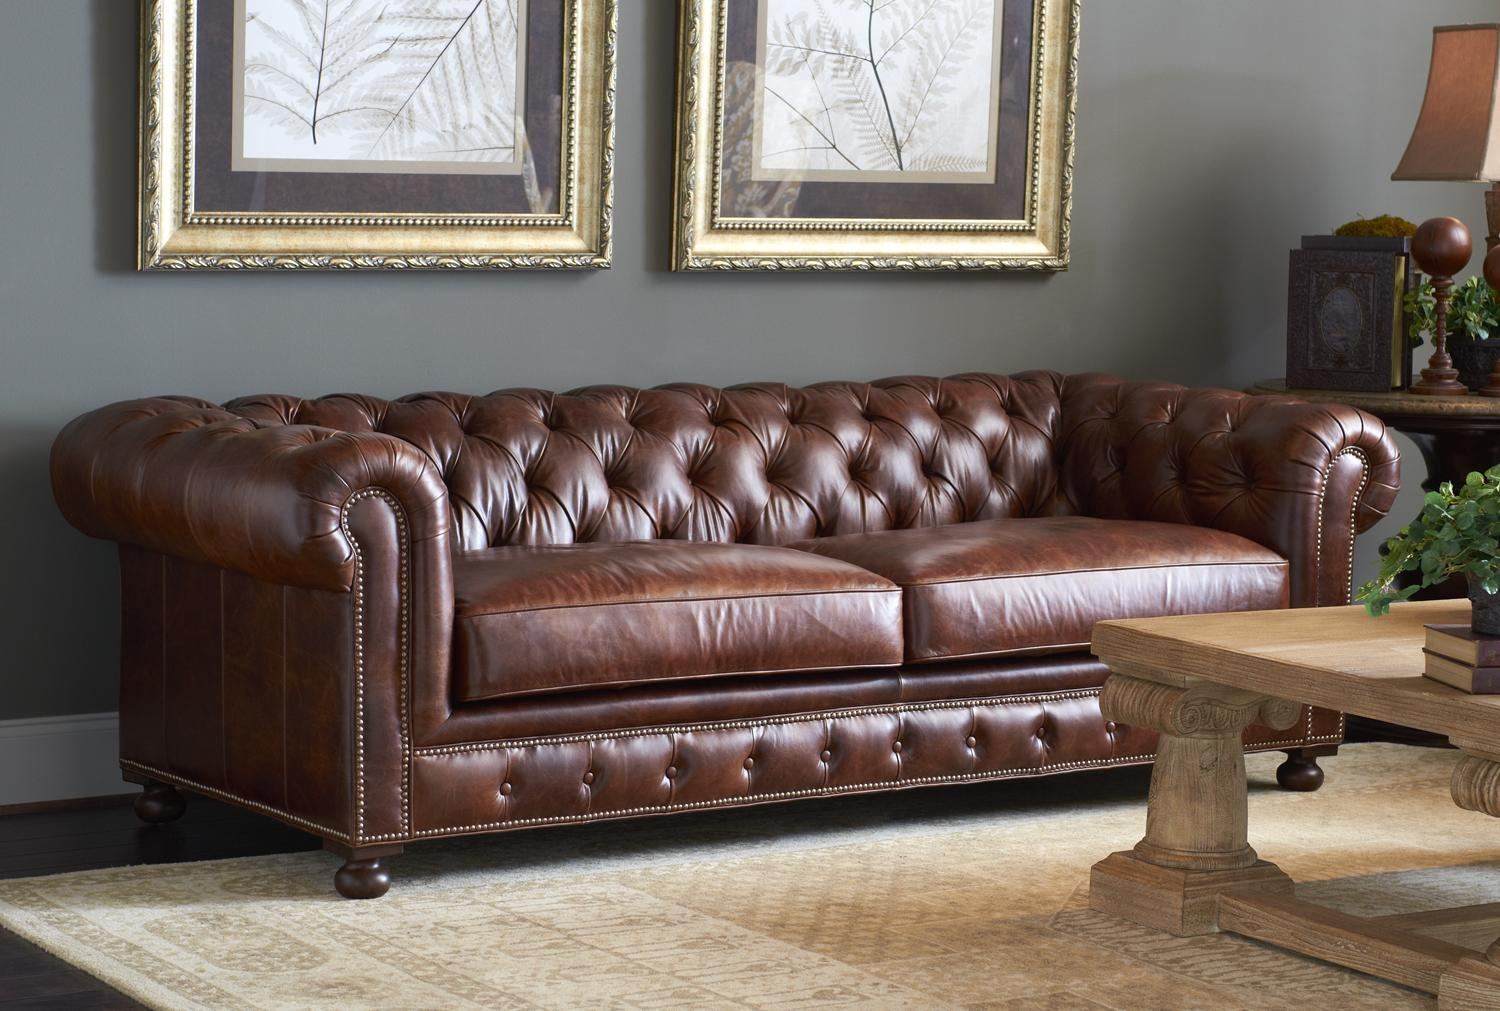 Leather Sofa Tufted Pertaining To Brown Tufted Sofas (Image 12 of 20)